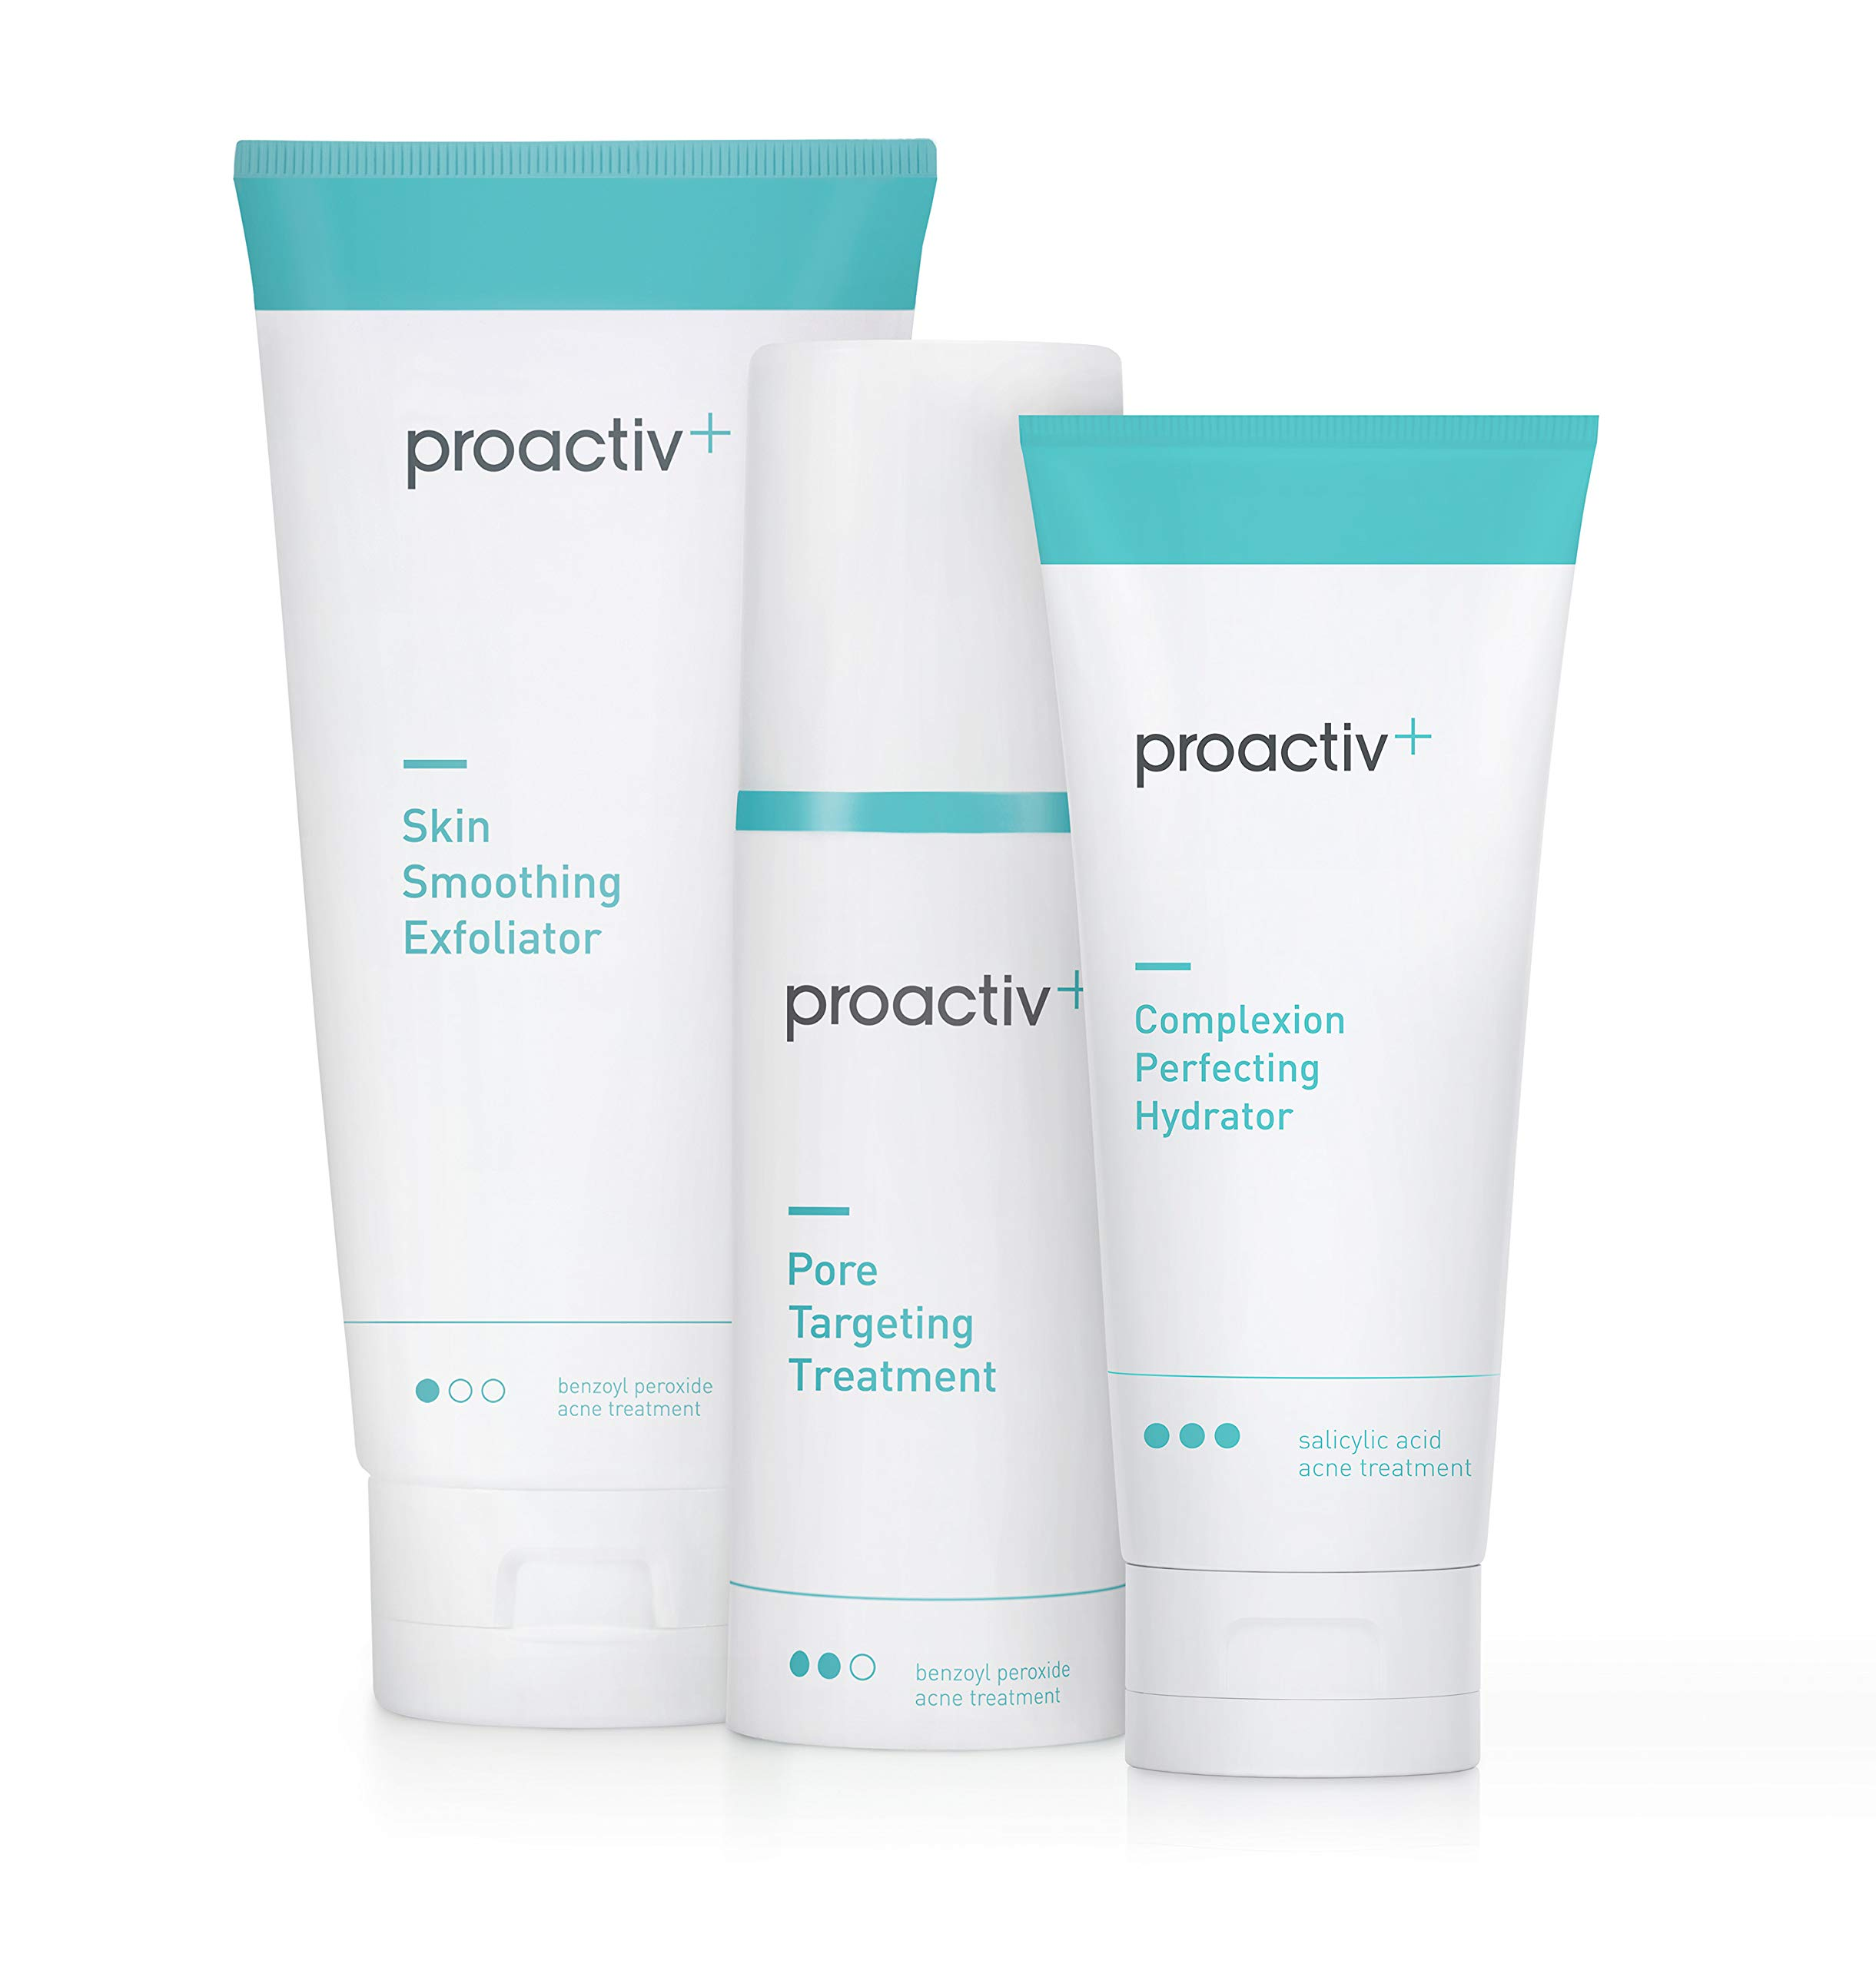 Proactiv+ 3-Step Acne Treatment System, (90 Day) by Proactiv